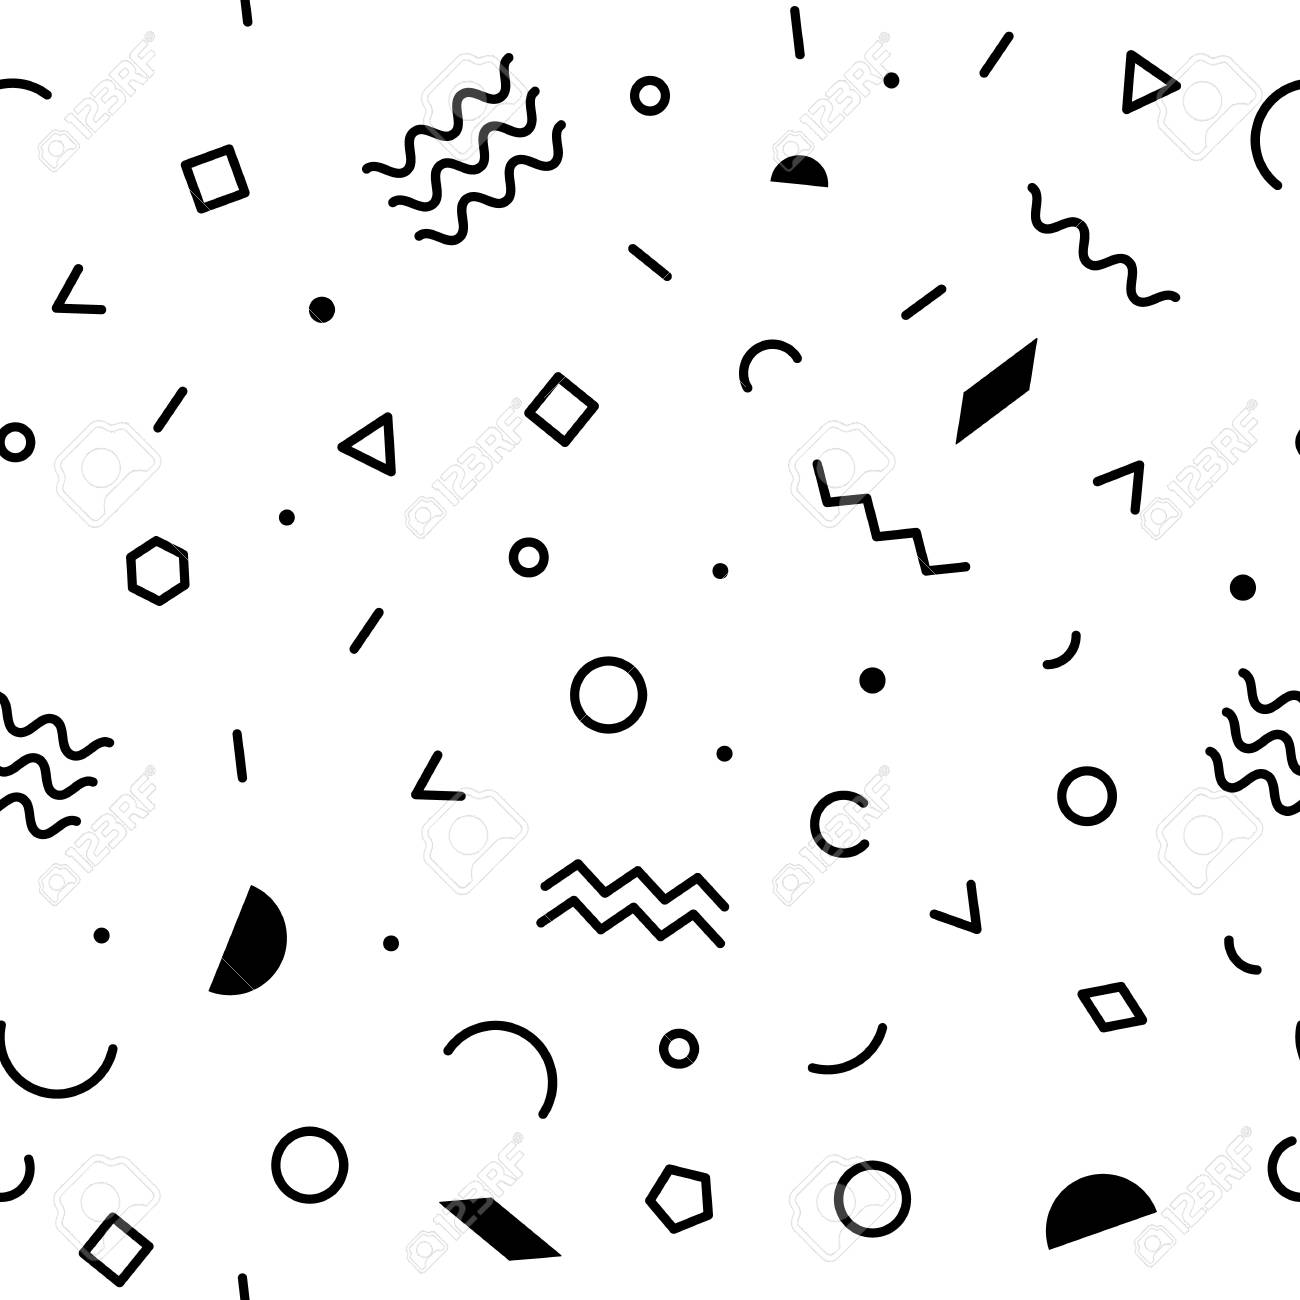 Black and white geometric memphis pattern with zig-zag lines,